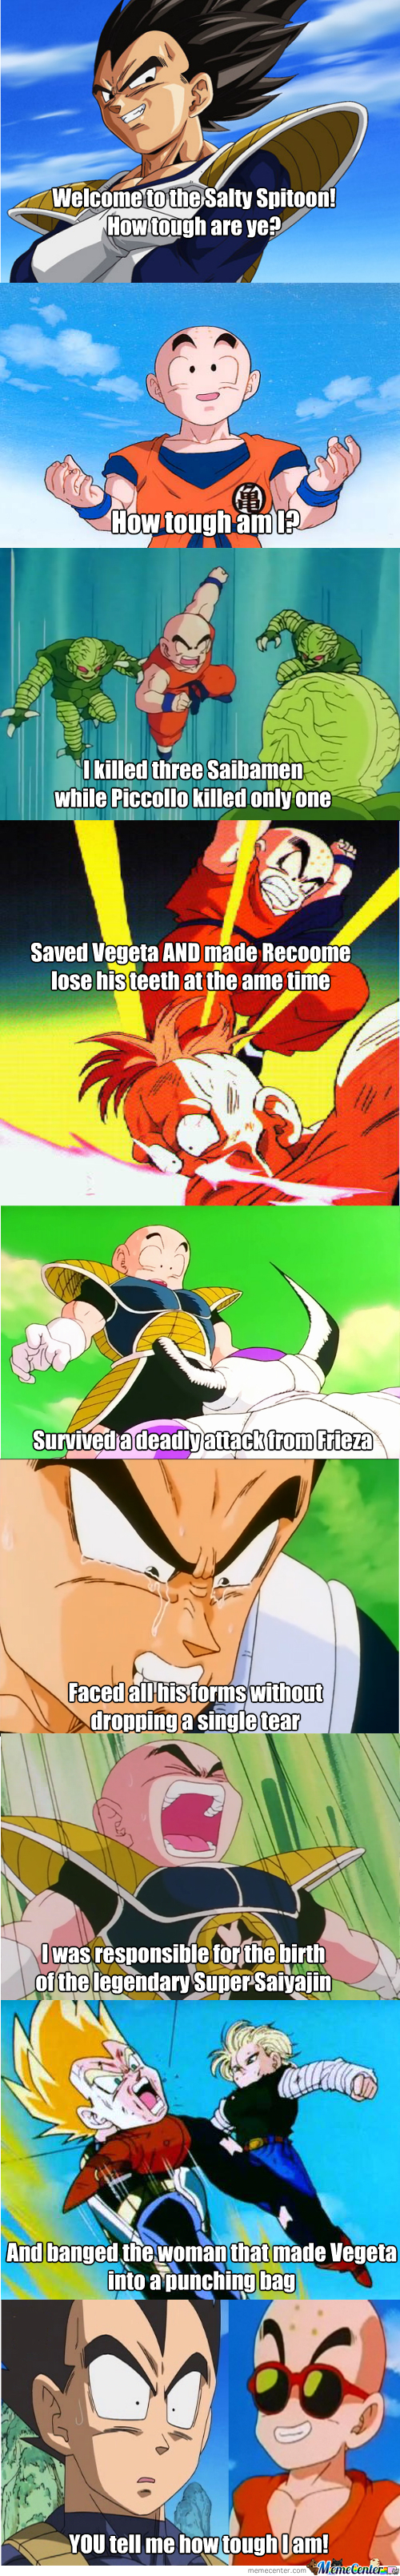 That Awkward Moment When You Realize Kuririn Is Pretty Badass 0.0